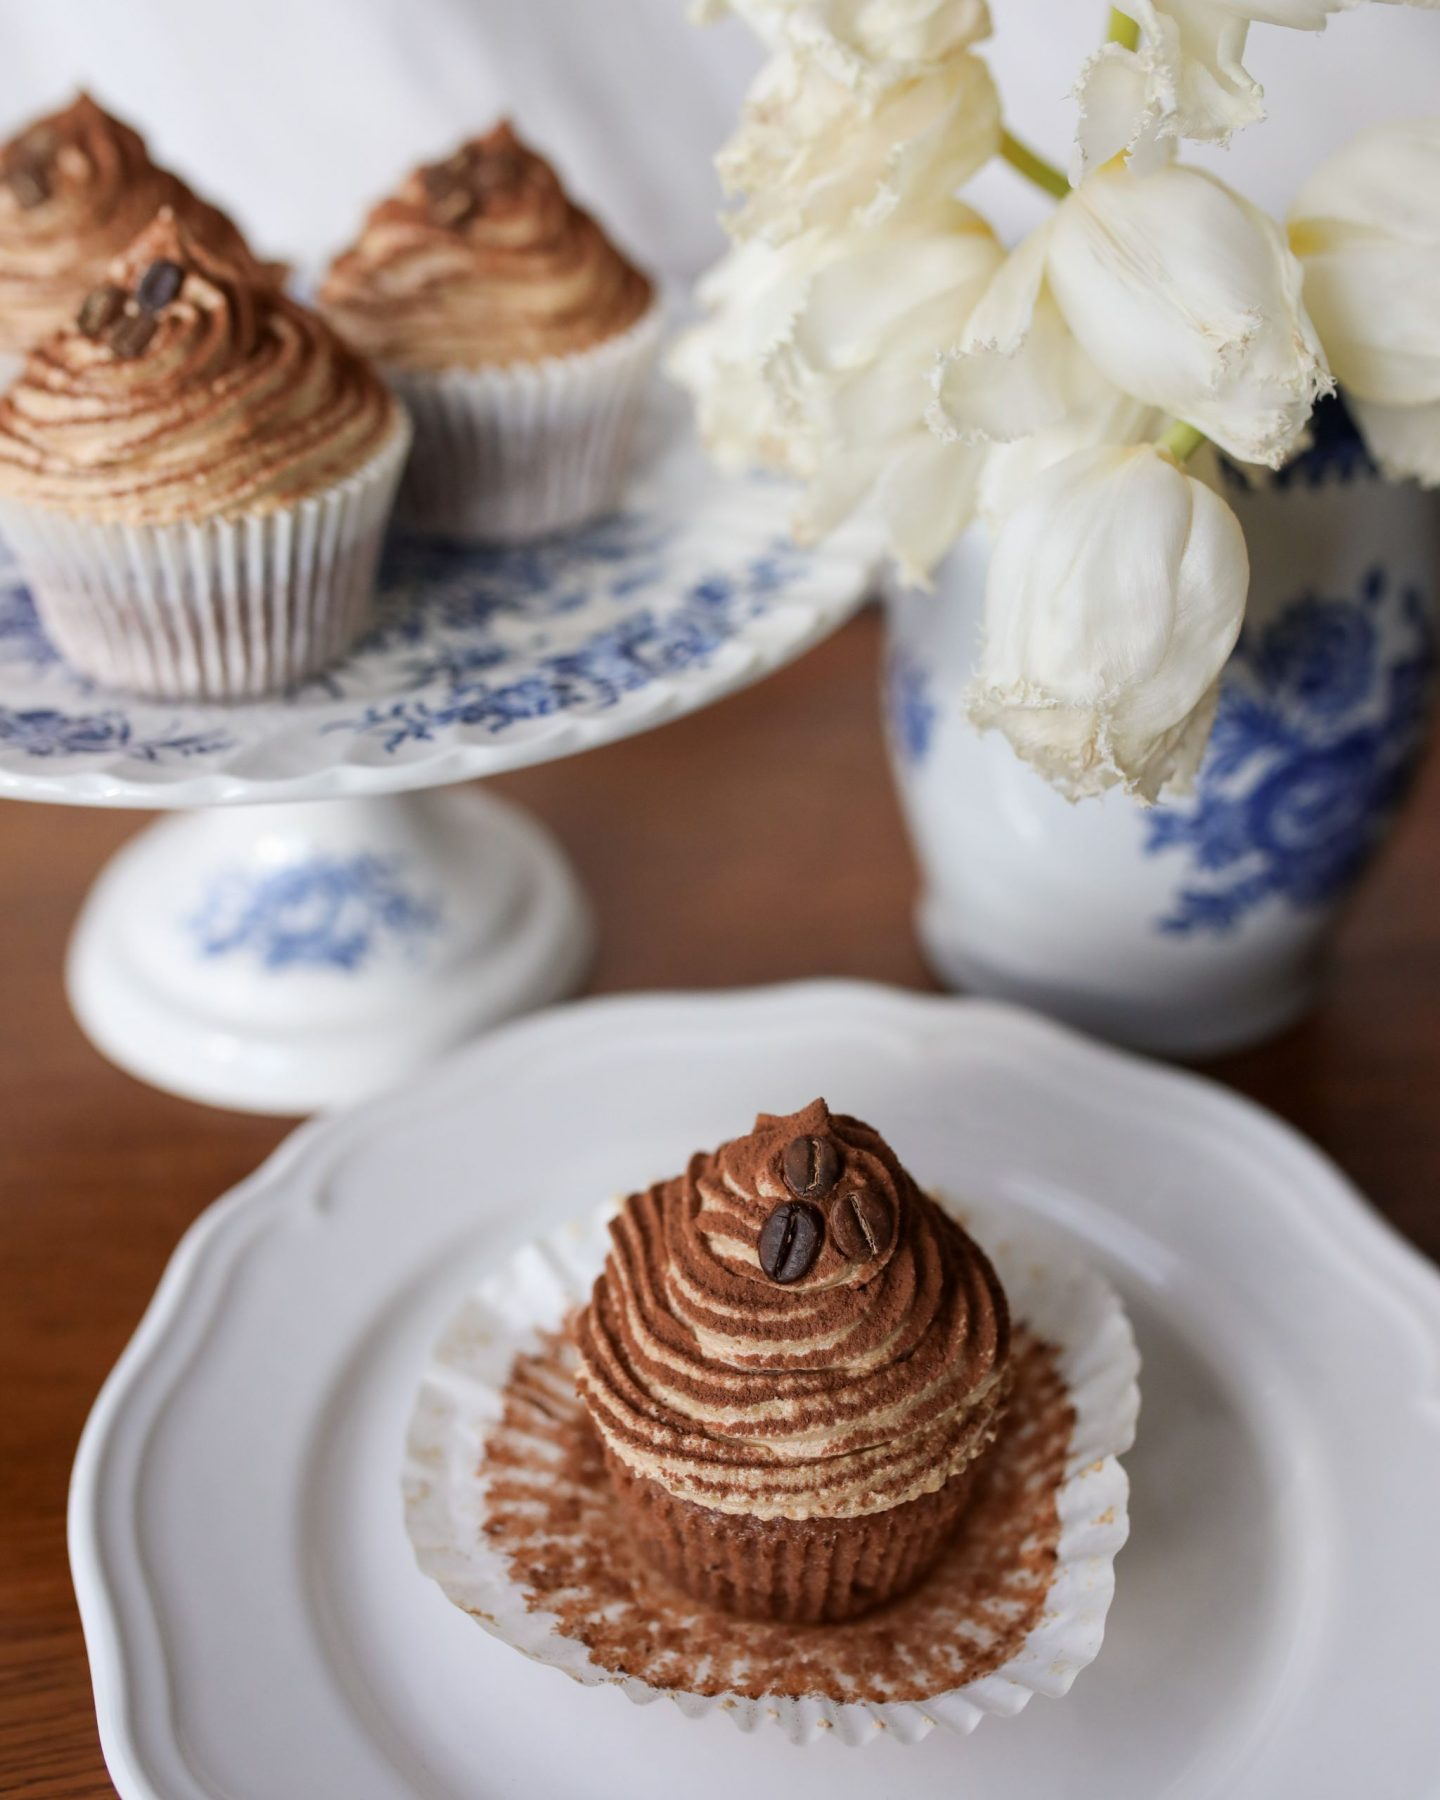 Chocolate and Coffee Cupcakes with a Caramel Core, Katie KALANCHOE